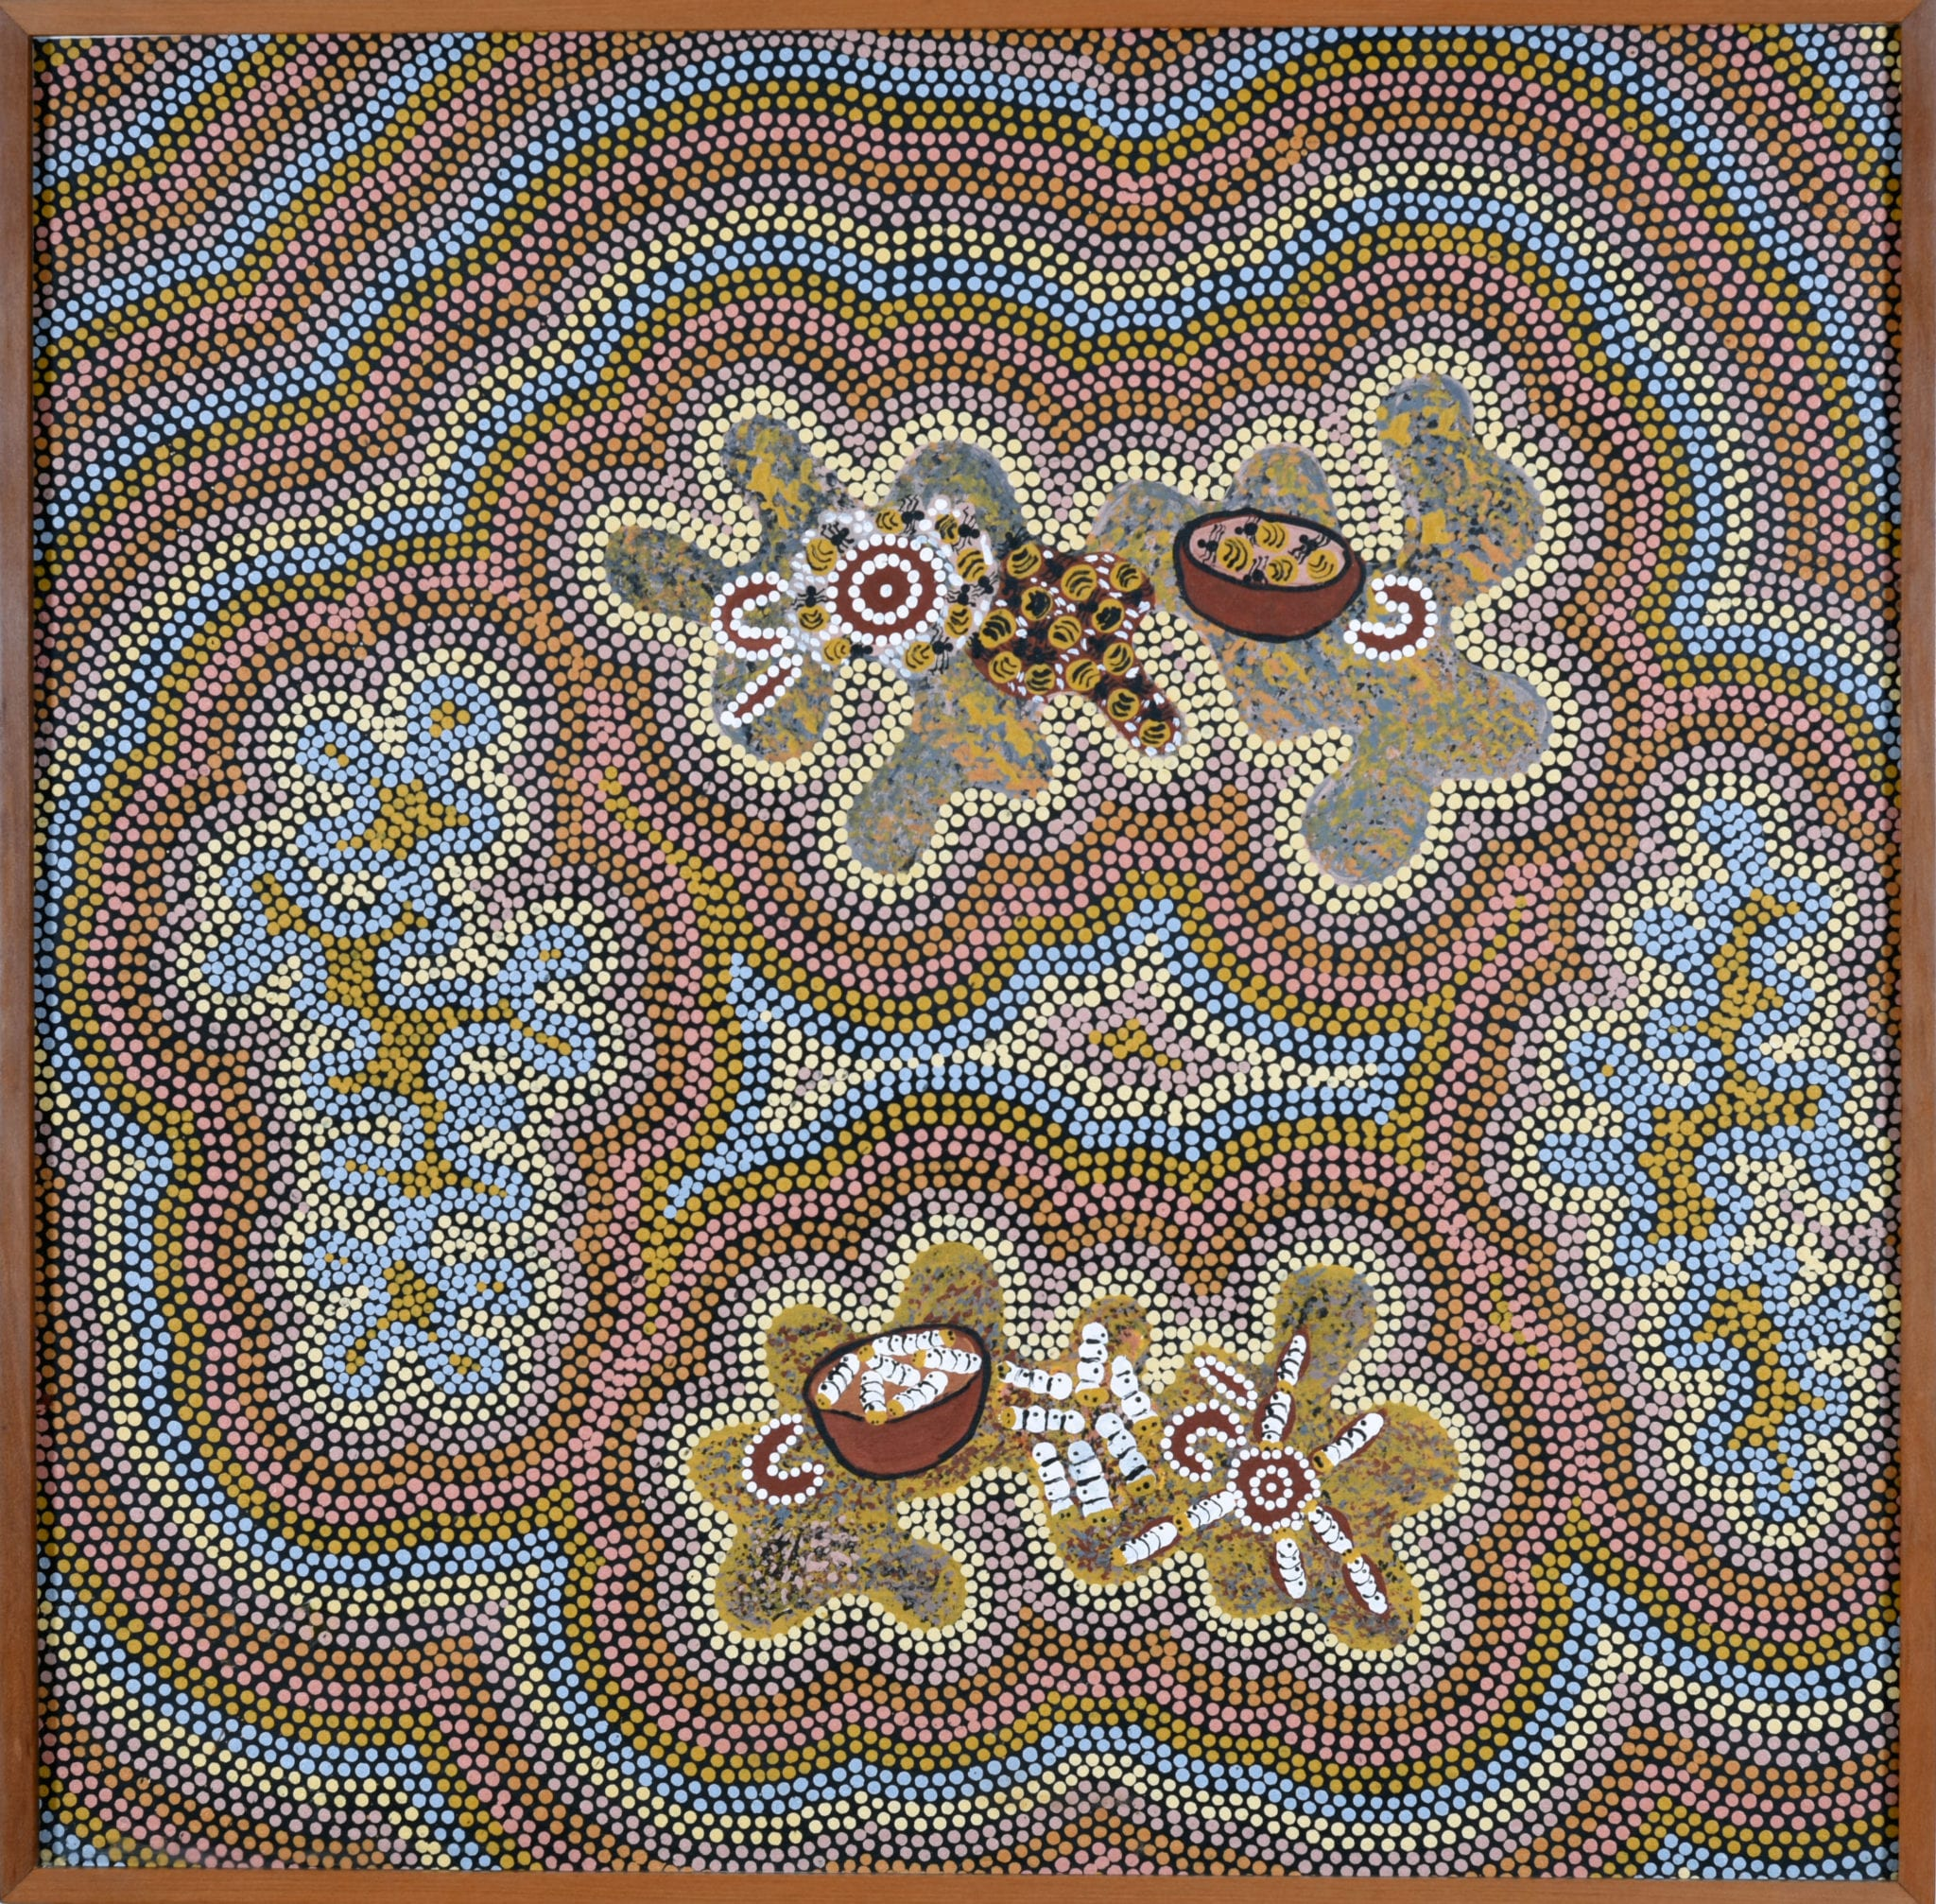 Sandra Nampitjinpa, (b. 1954), Witchetty grub and Honey Ant Dreaming, 1990, Synthetic polymer paint on canvas 93.1 x 94.2 cm. CBUS Collection of Australian Art.